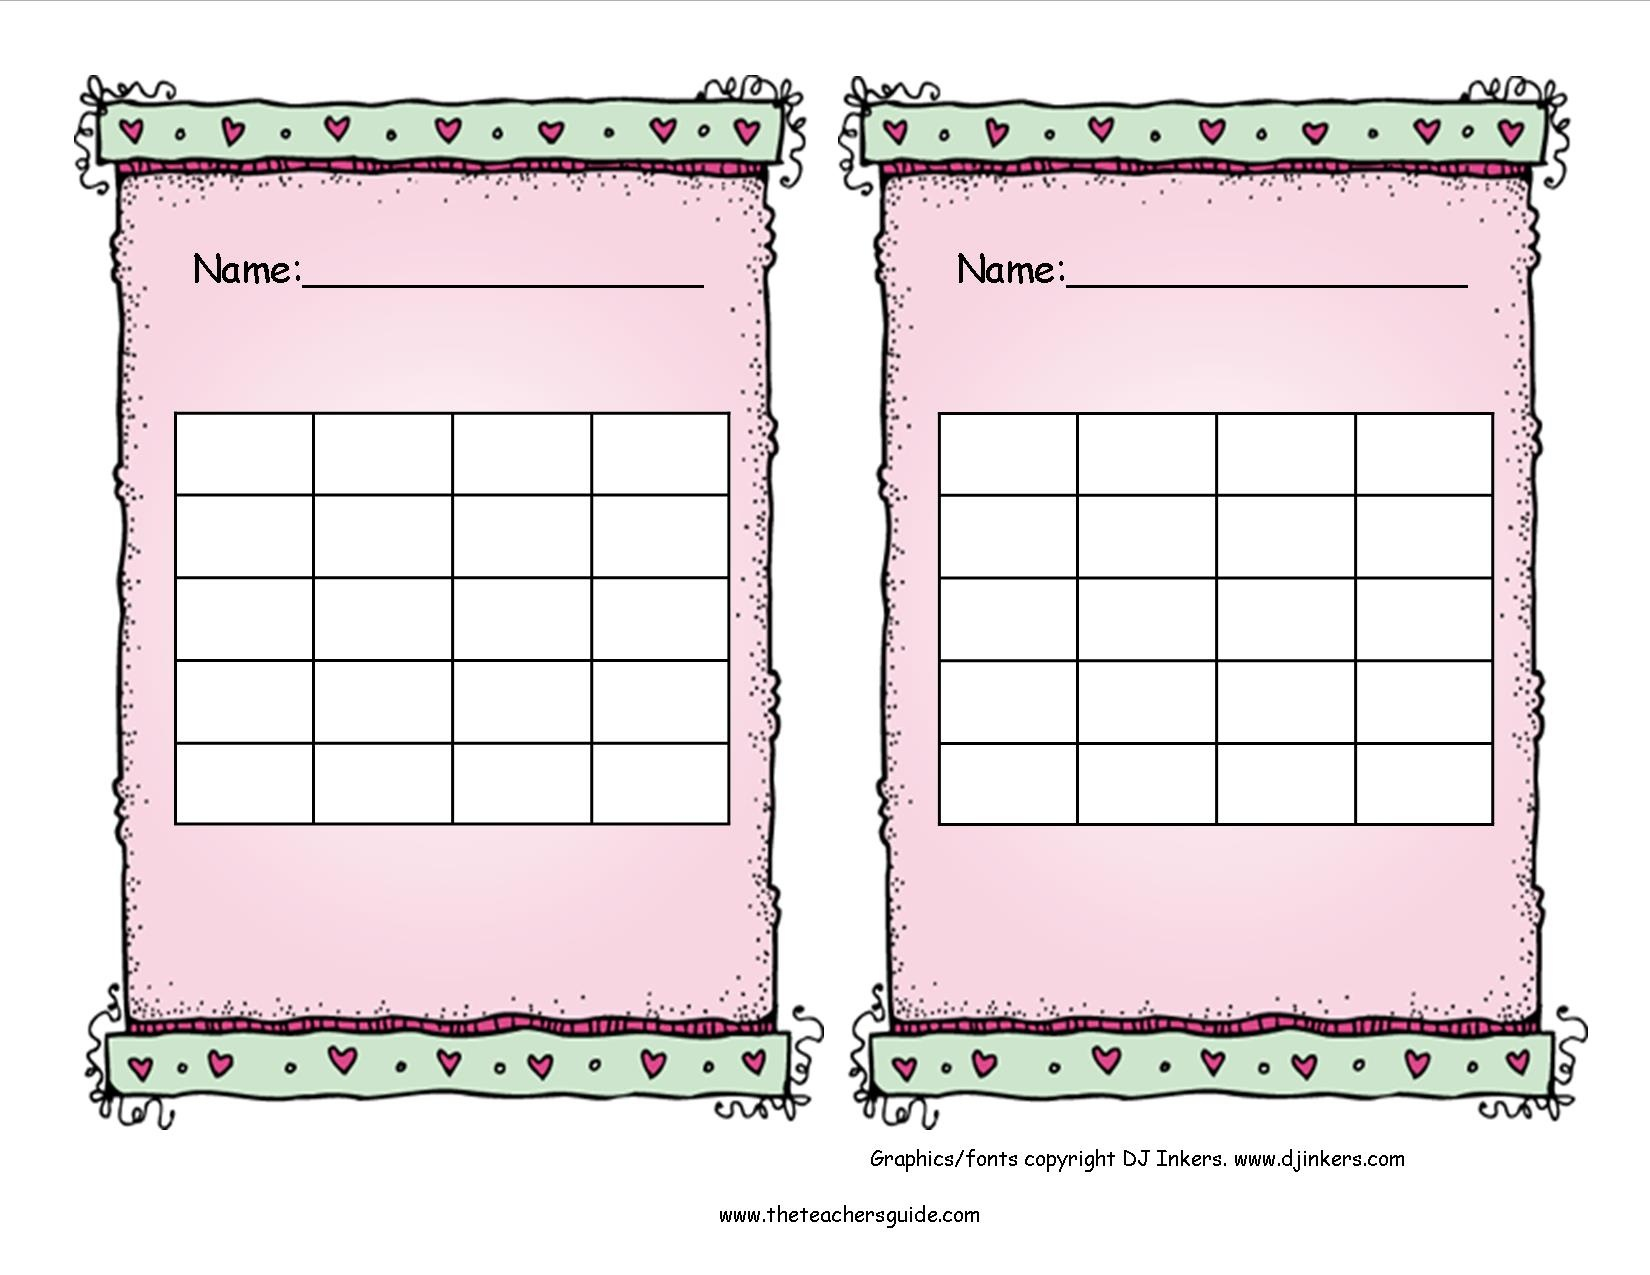 Free Printable Reward And Incentive Charts - Free Printable Charts For Teachers